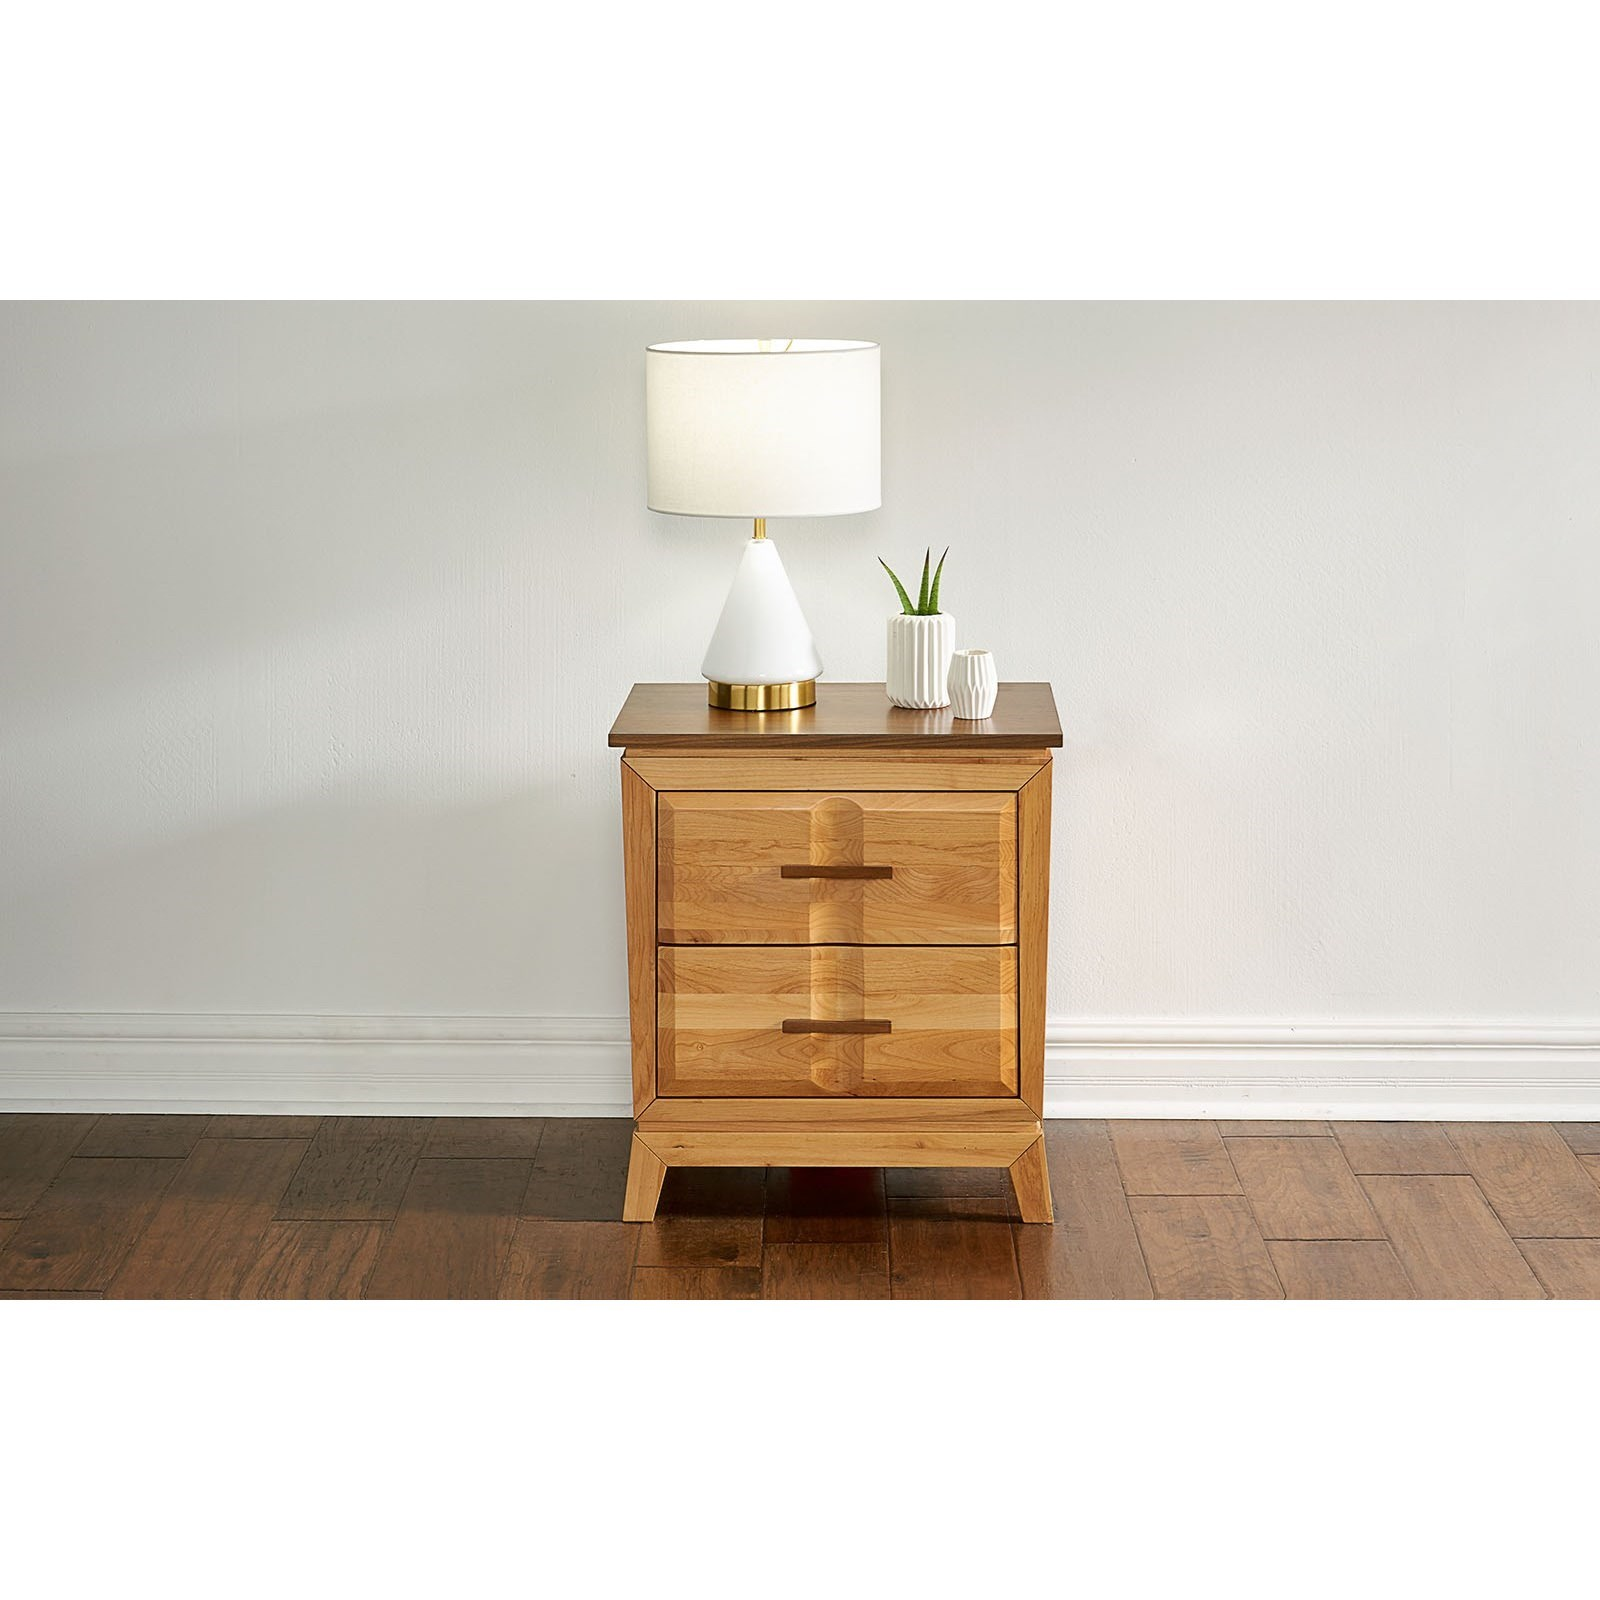 Modway Nightstand with USB Port  by A-A at Walker's Furniture